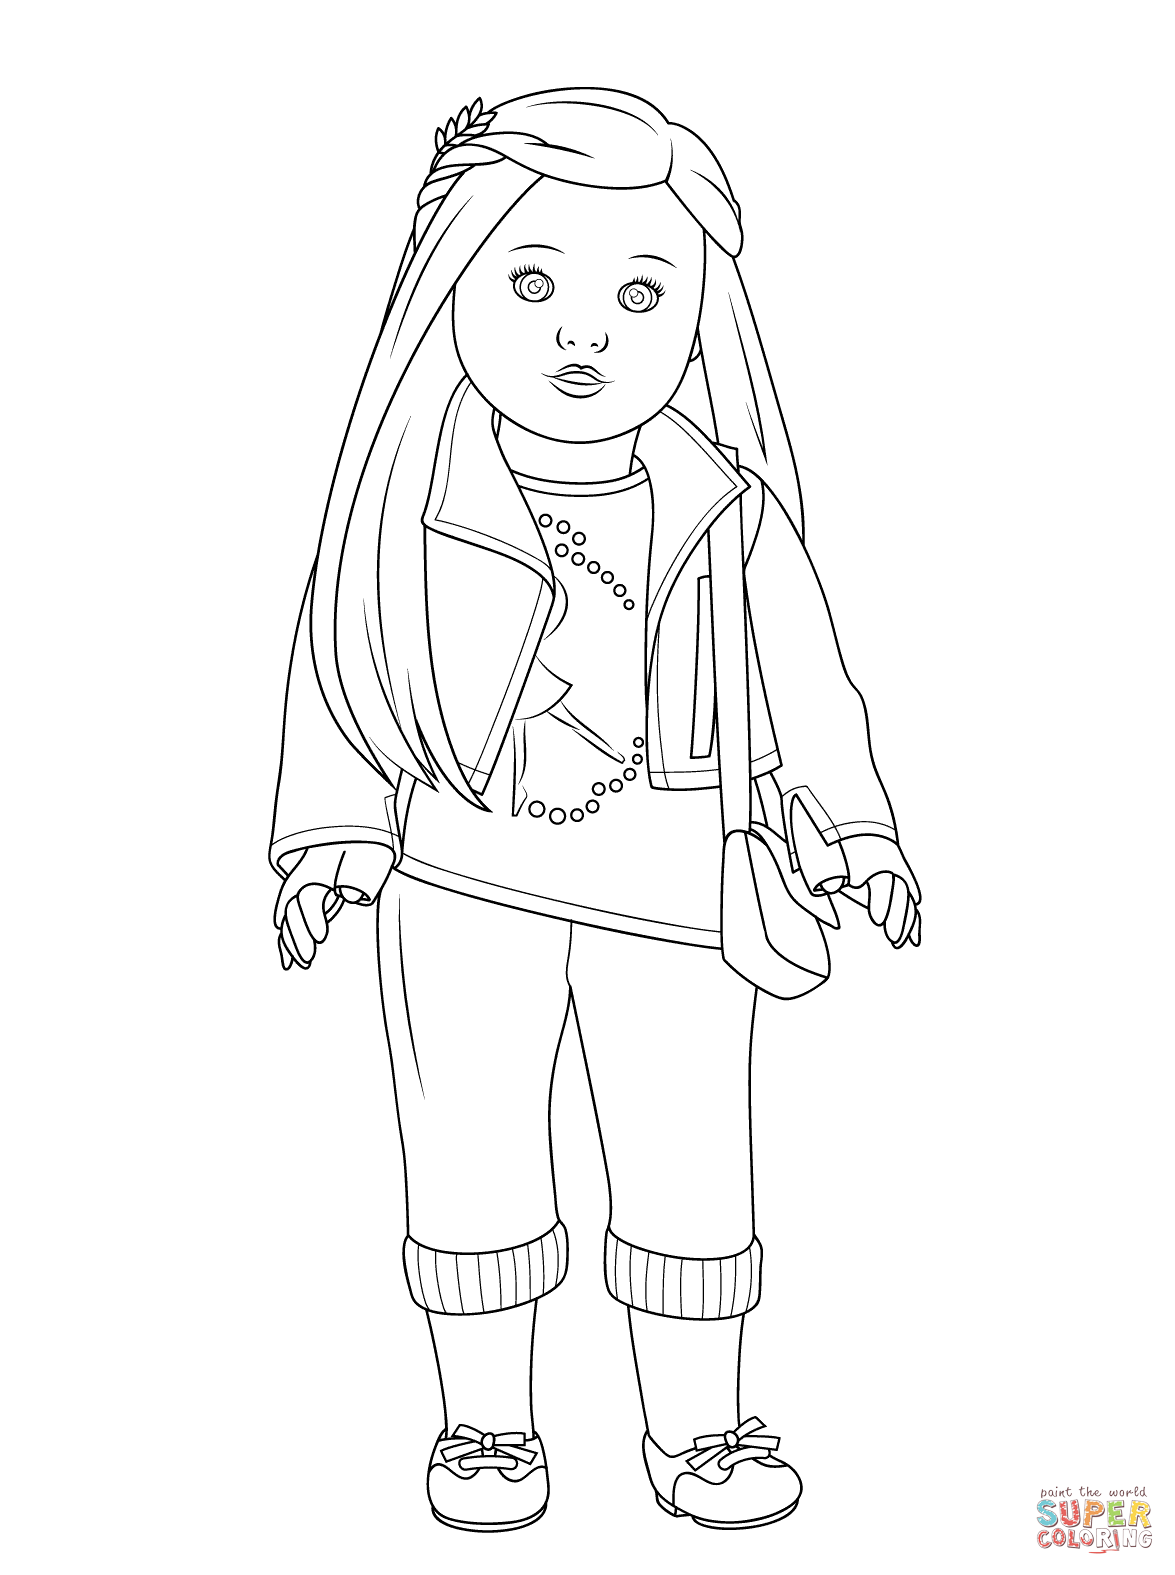 1175x1575 American Girl Isabelle Doll Coloring Page Free Printable